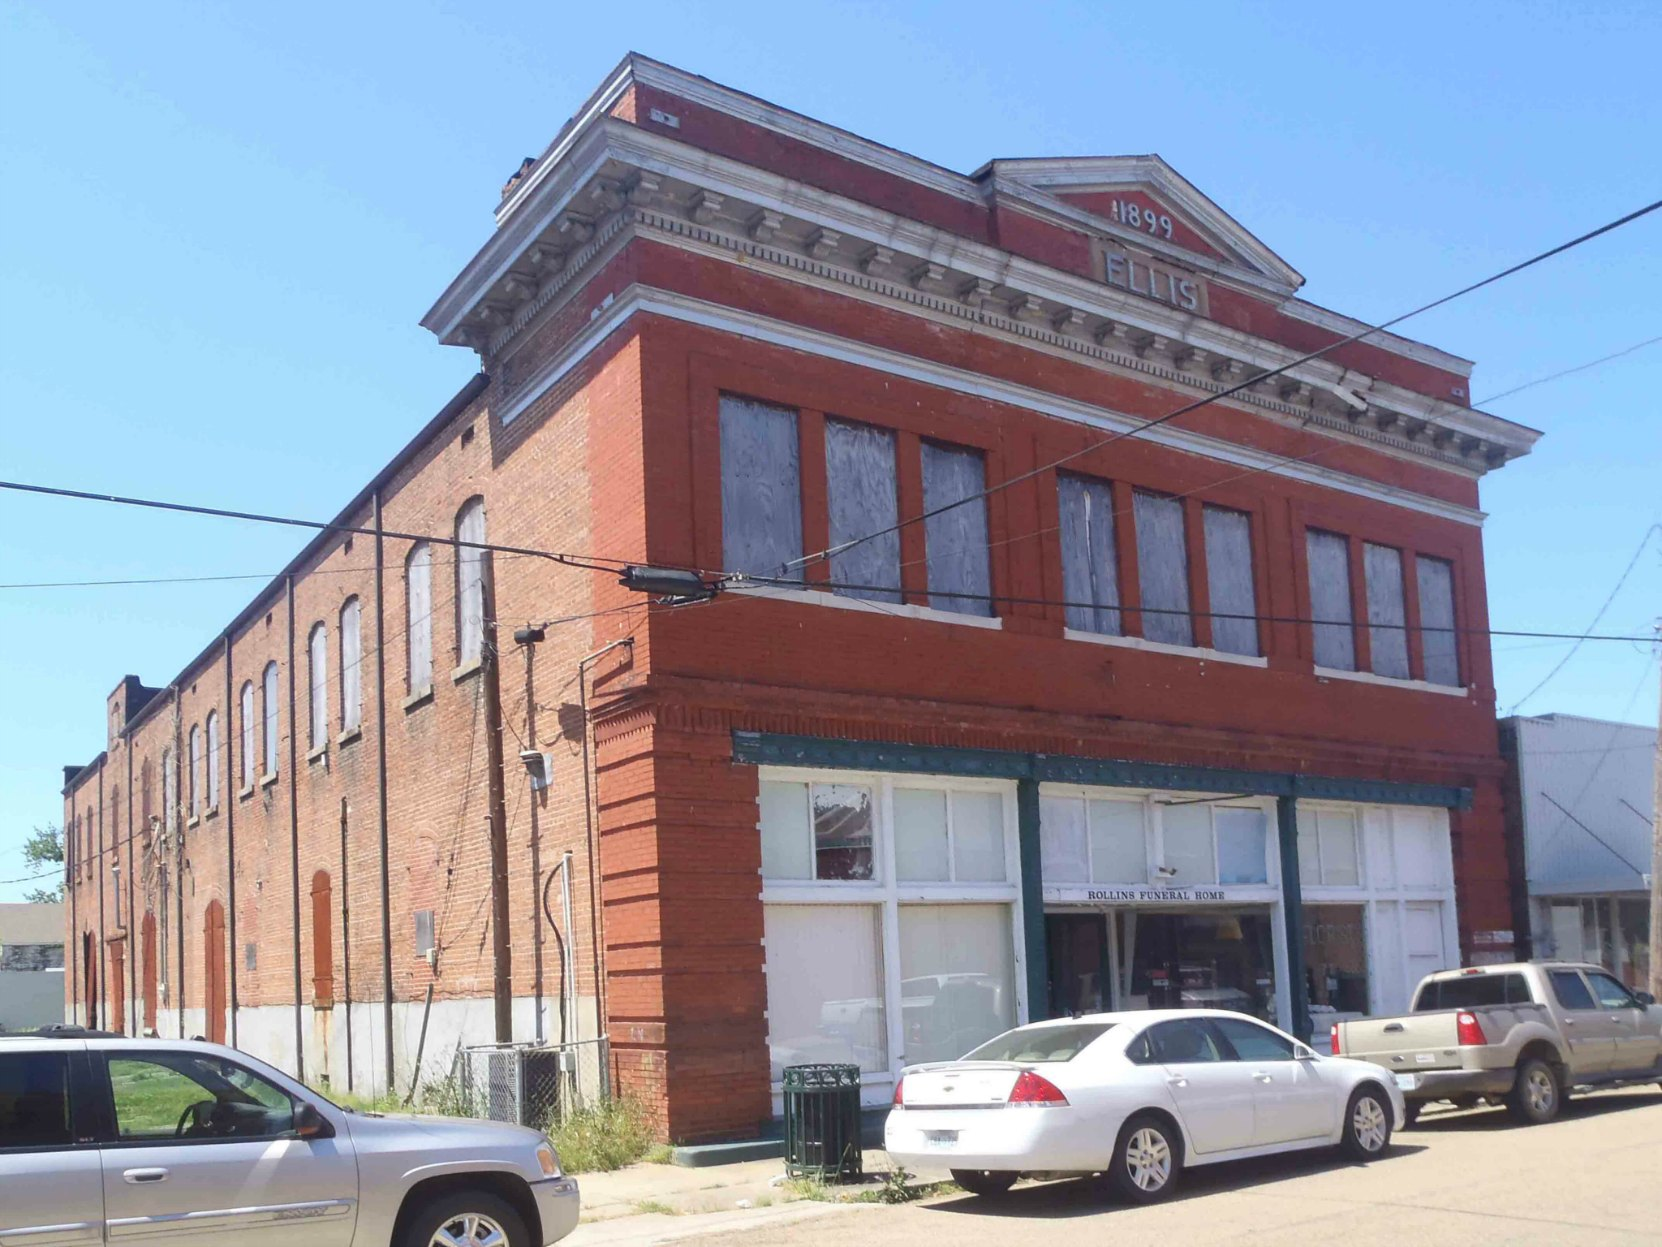 One of the commercial buildings in the Bernheimer Complex, Port Gibson, Claiborne County, Mississippi